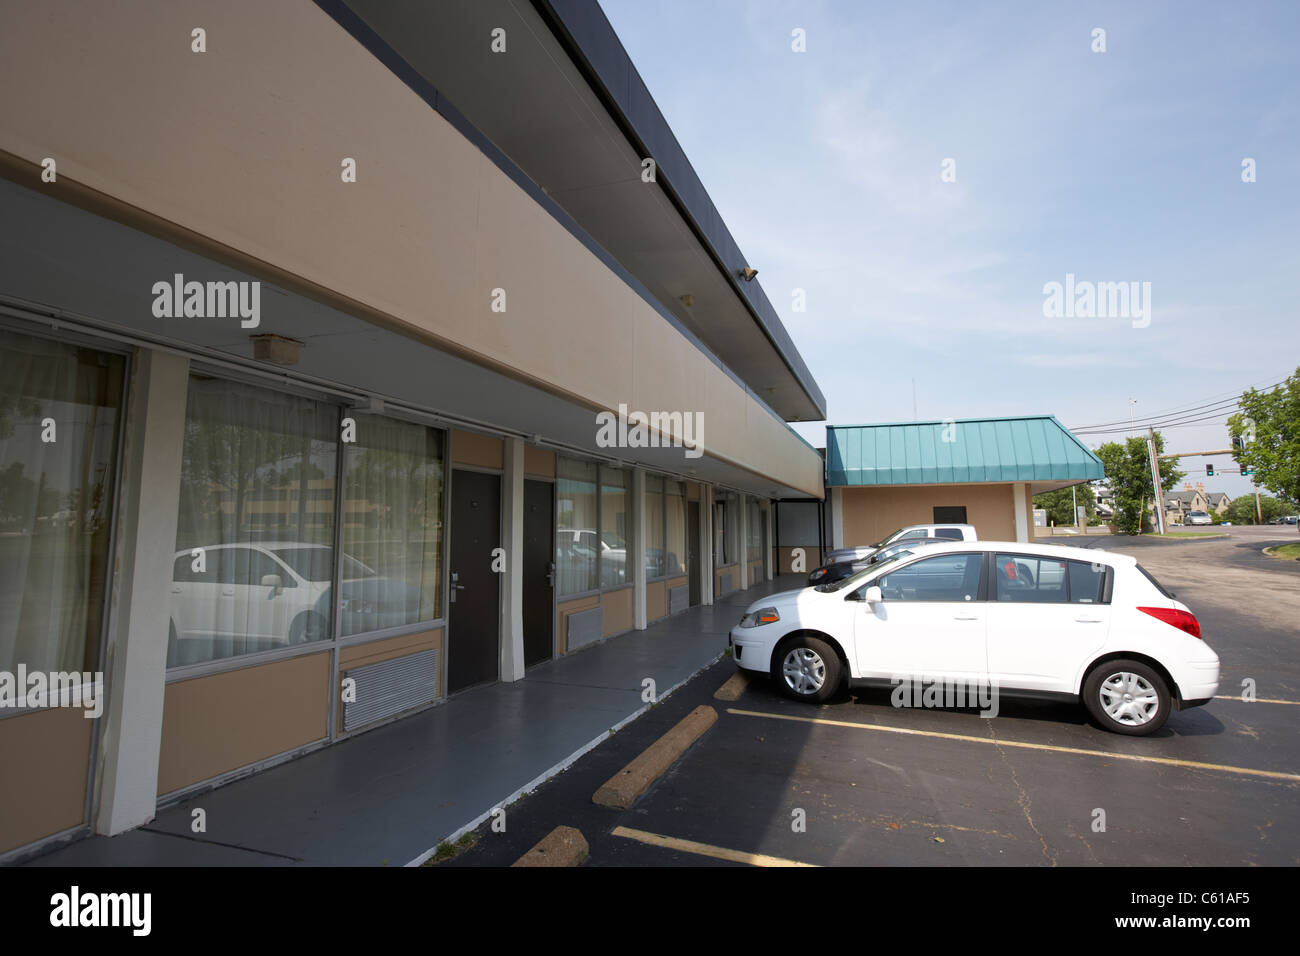 cars parked outside motel room block st louis county missouri usa - Stock Image